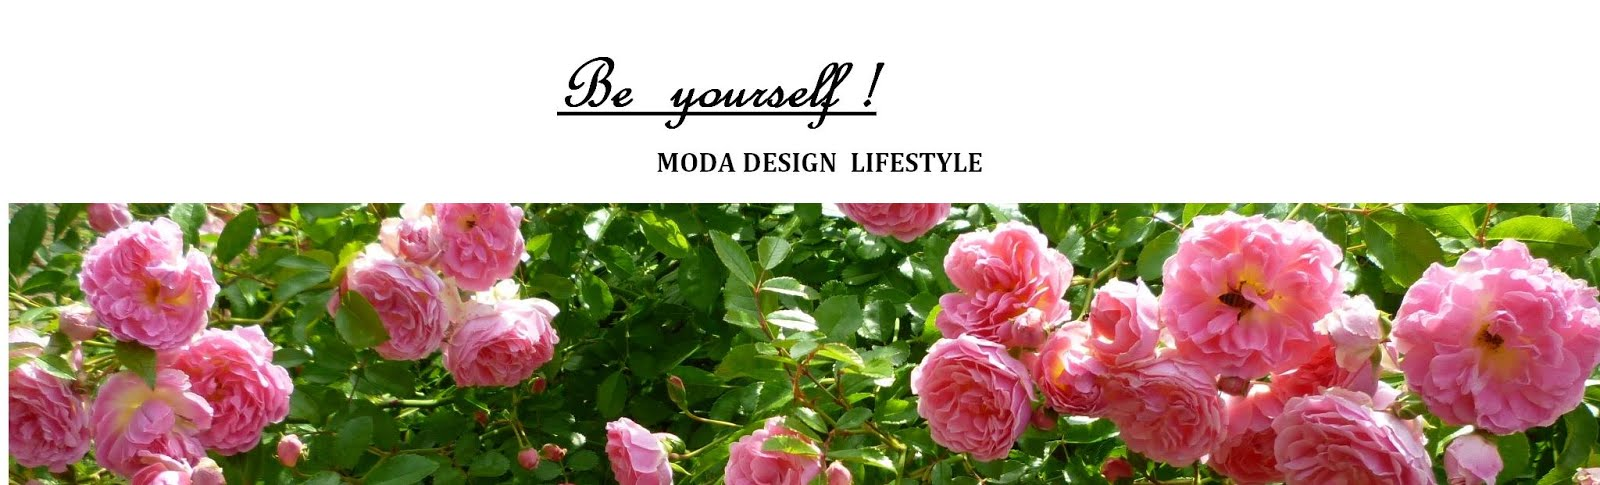 MODA      DESIGN      LIFESTYLE